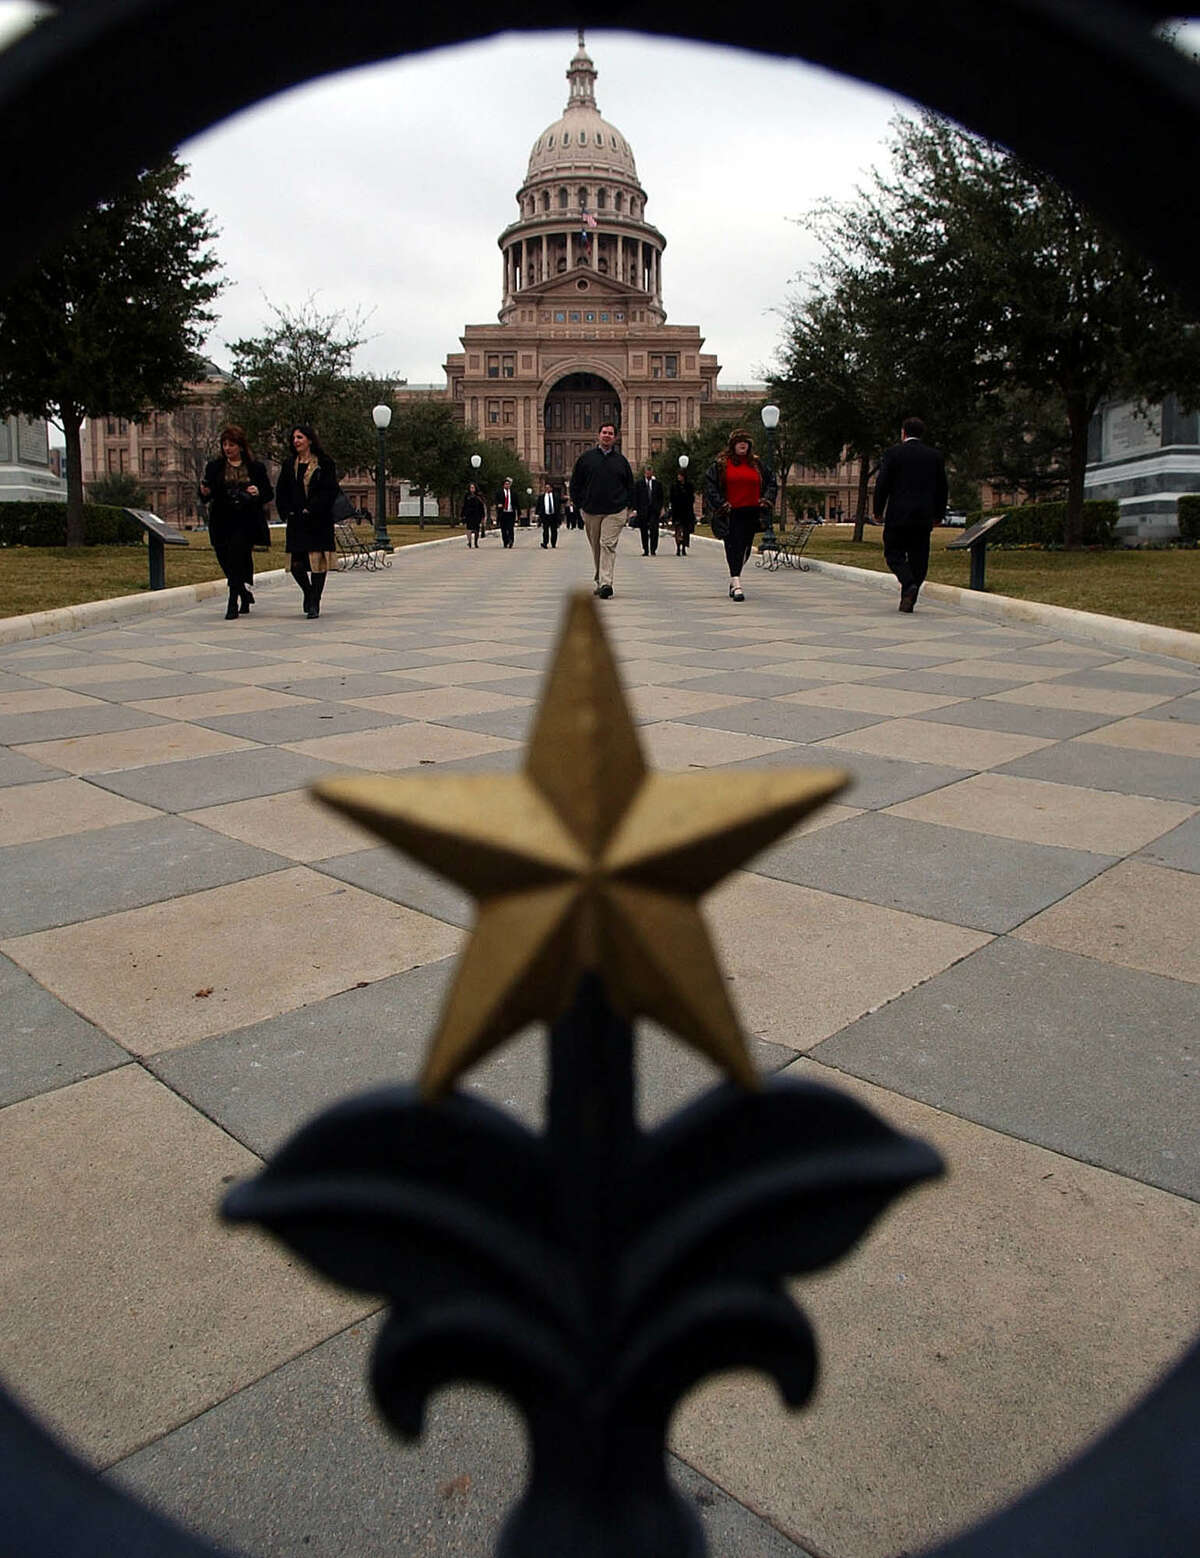 People are seen exiting the state capitol in Austin. (File Photo)